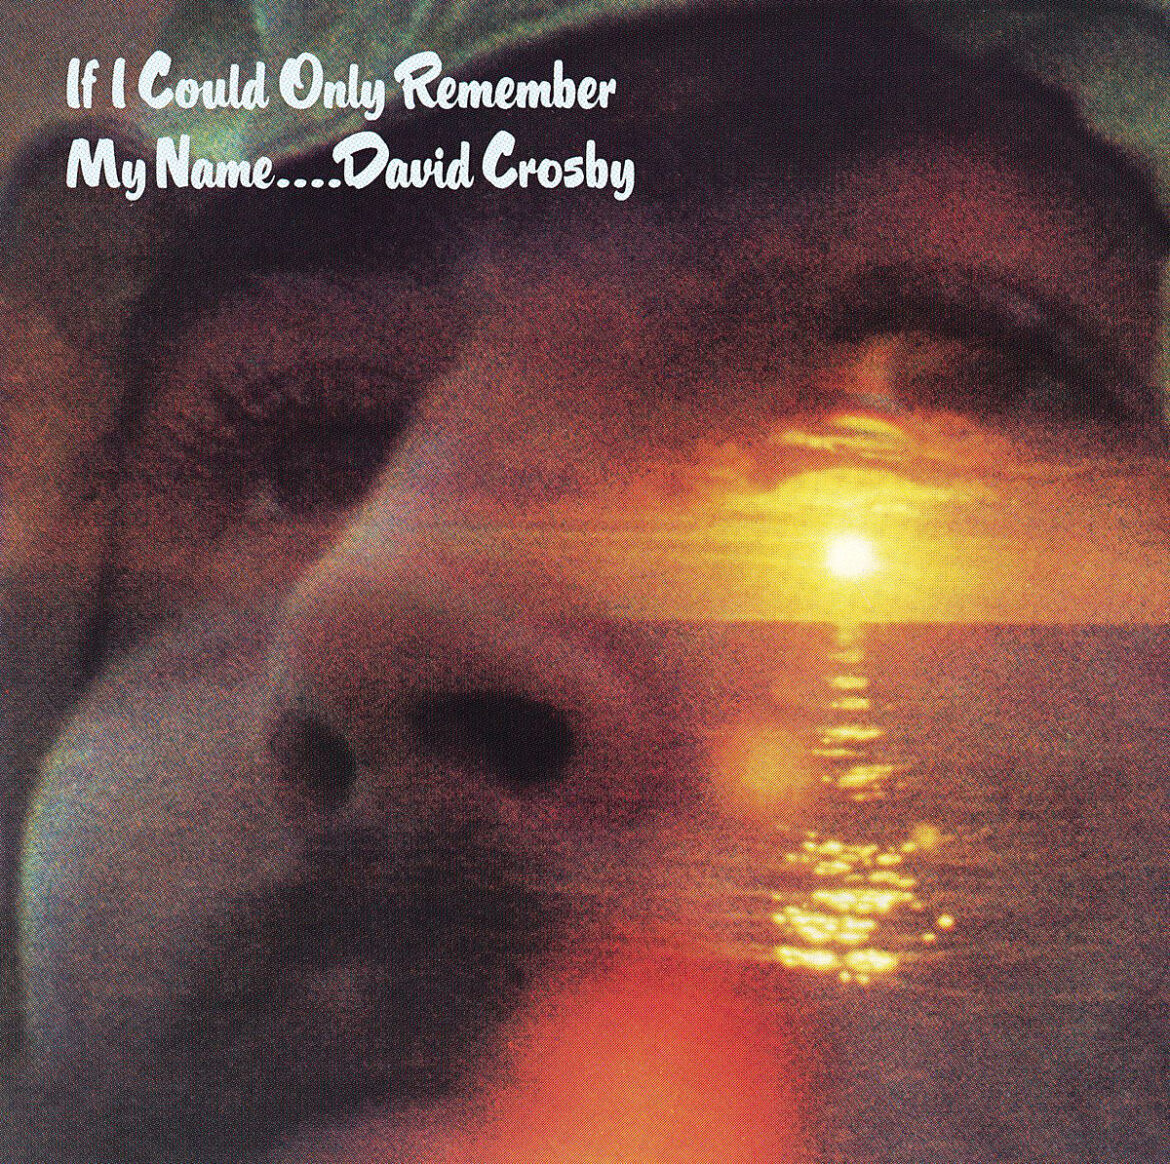 David Crosby's 'If I Could Only Remember My Name' – his most definitive album turns 50